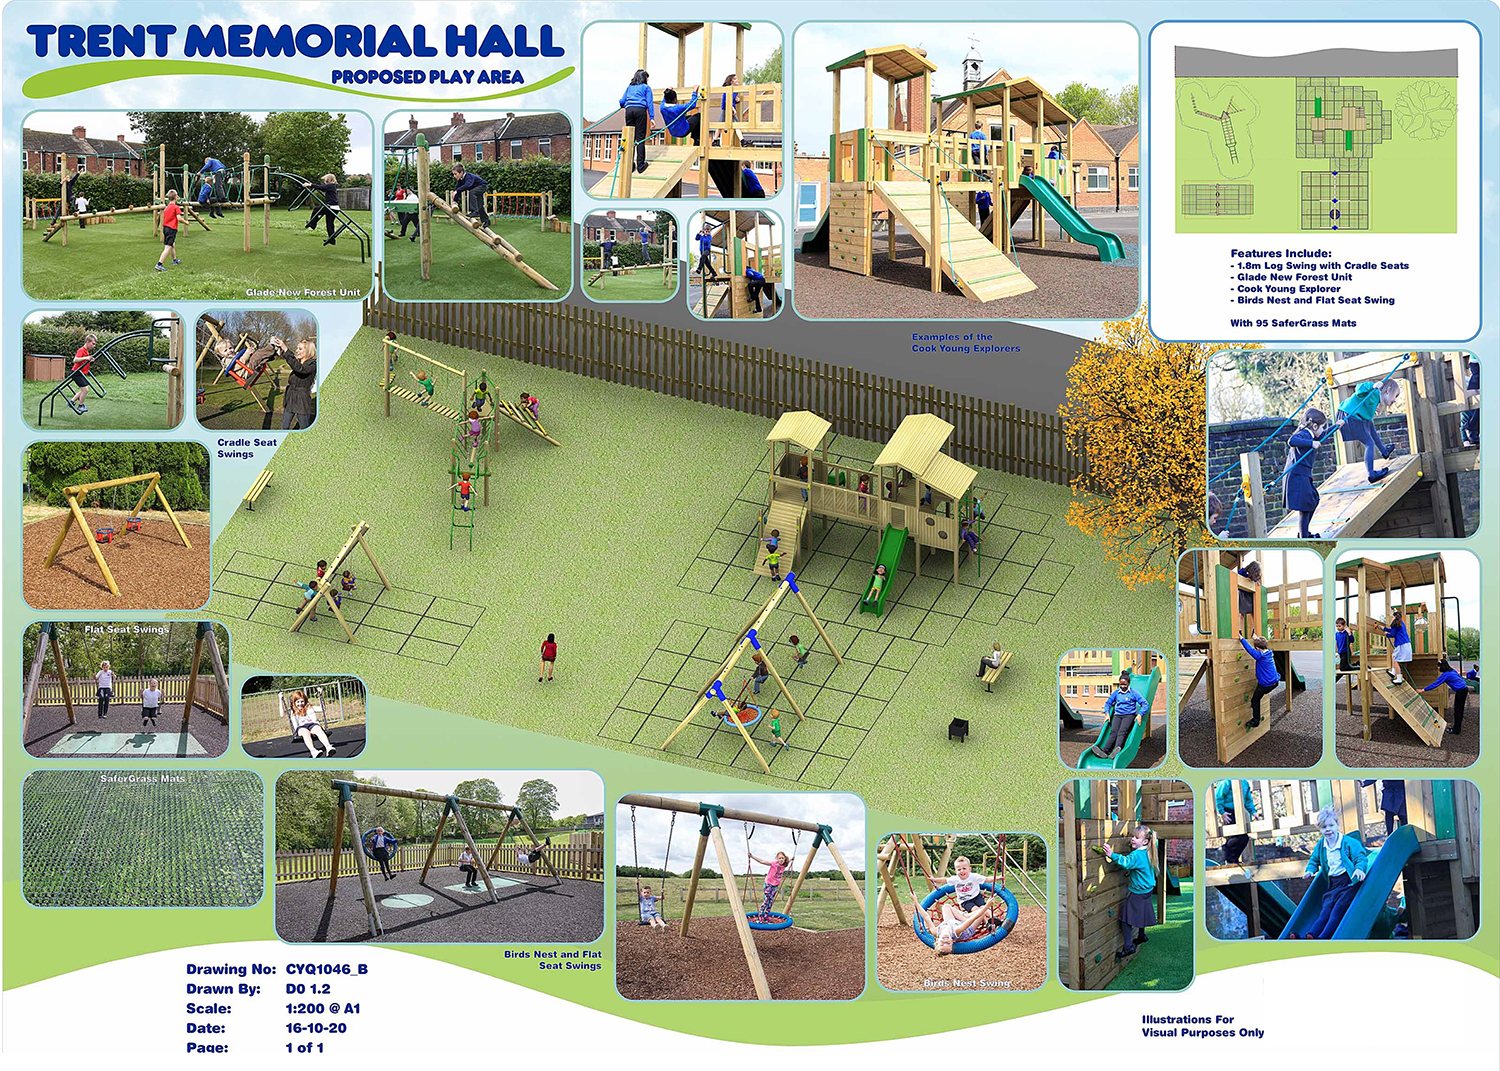 Trent Memorial Hall, hire available to locals, visitors and organisations